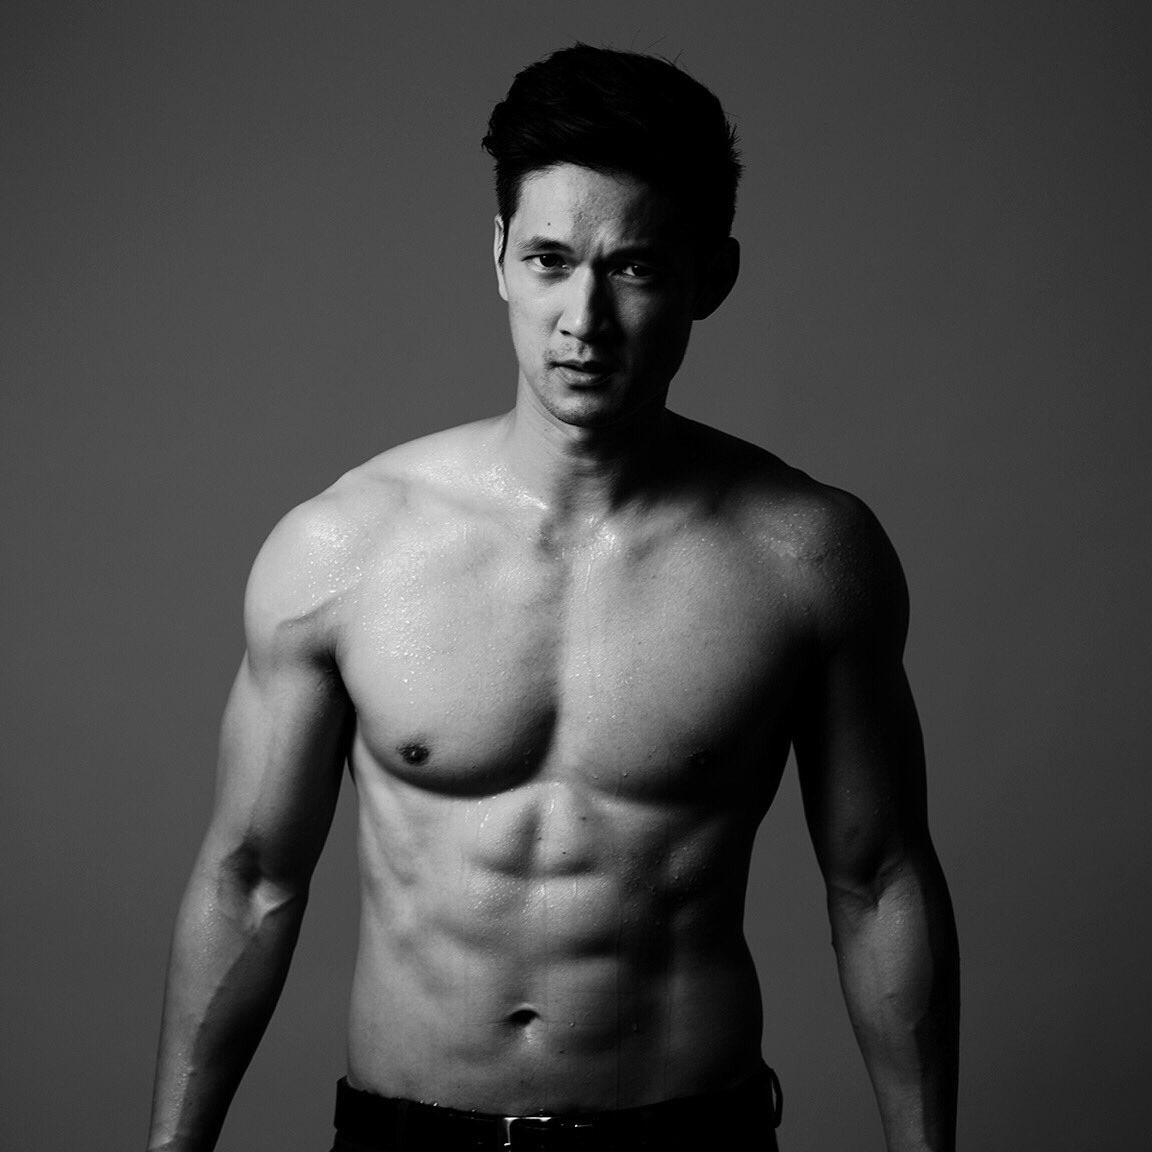 Harry shum jr2